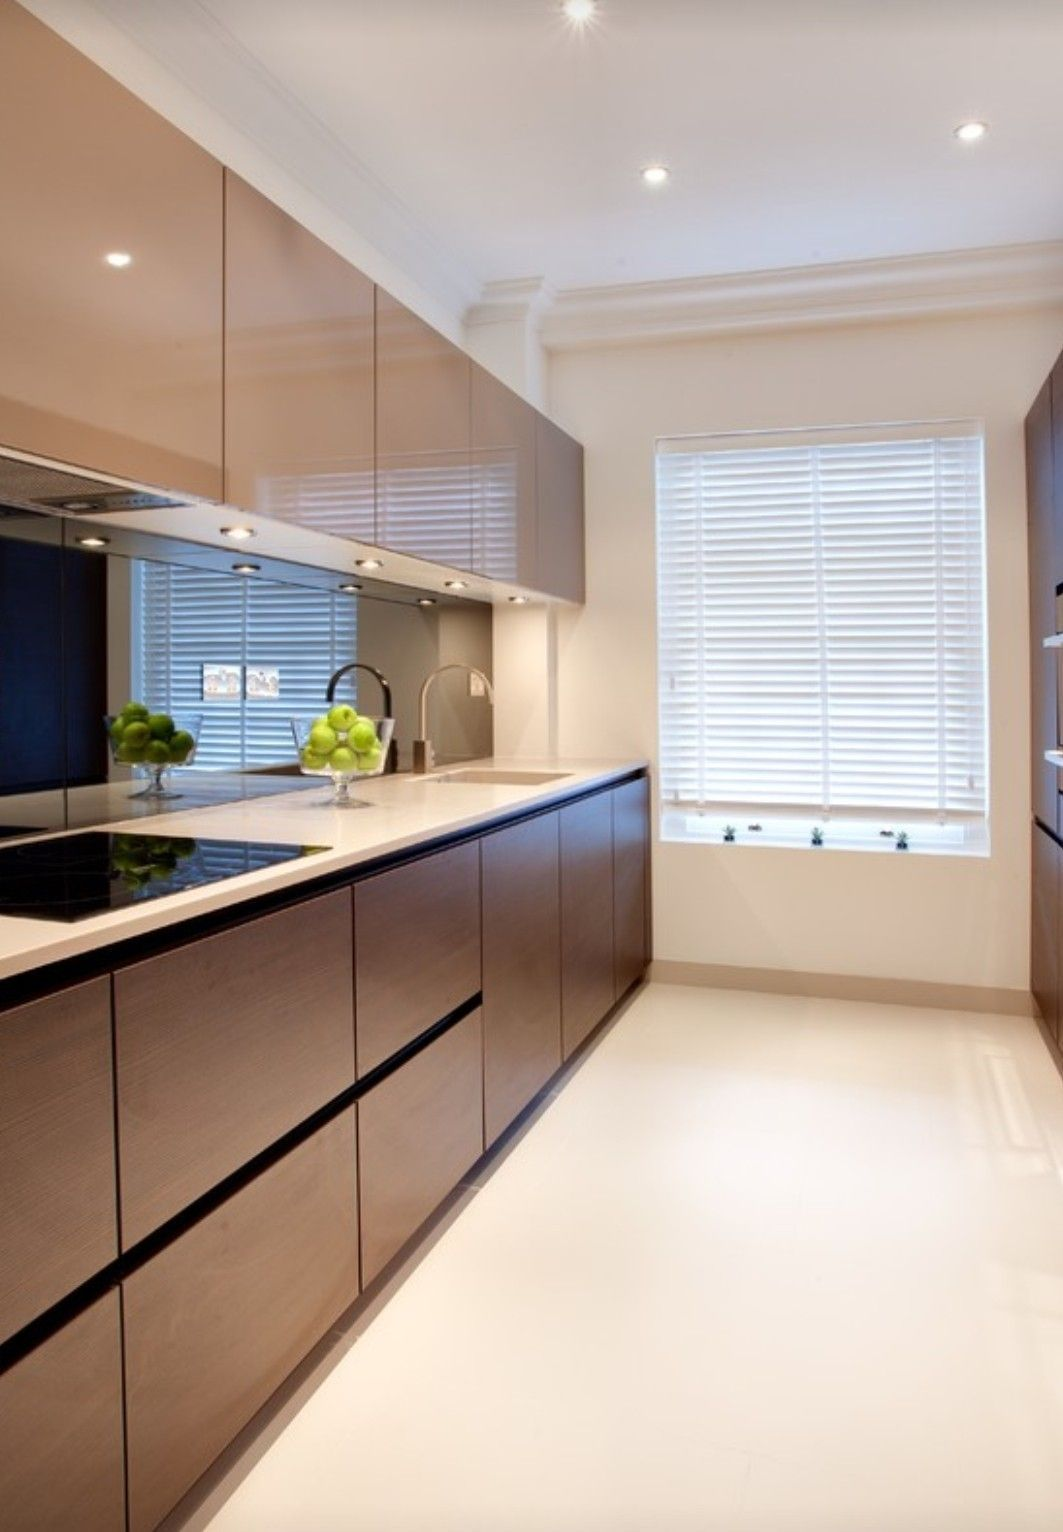 Best Show The Very Best Kitchen Floor Covering Ideas Pictures 400 x 300